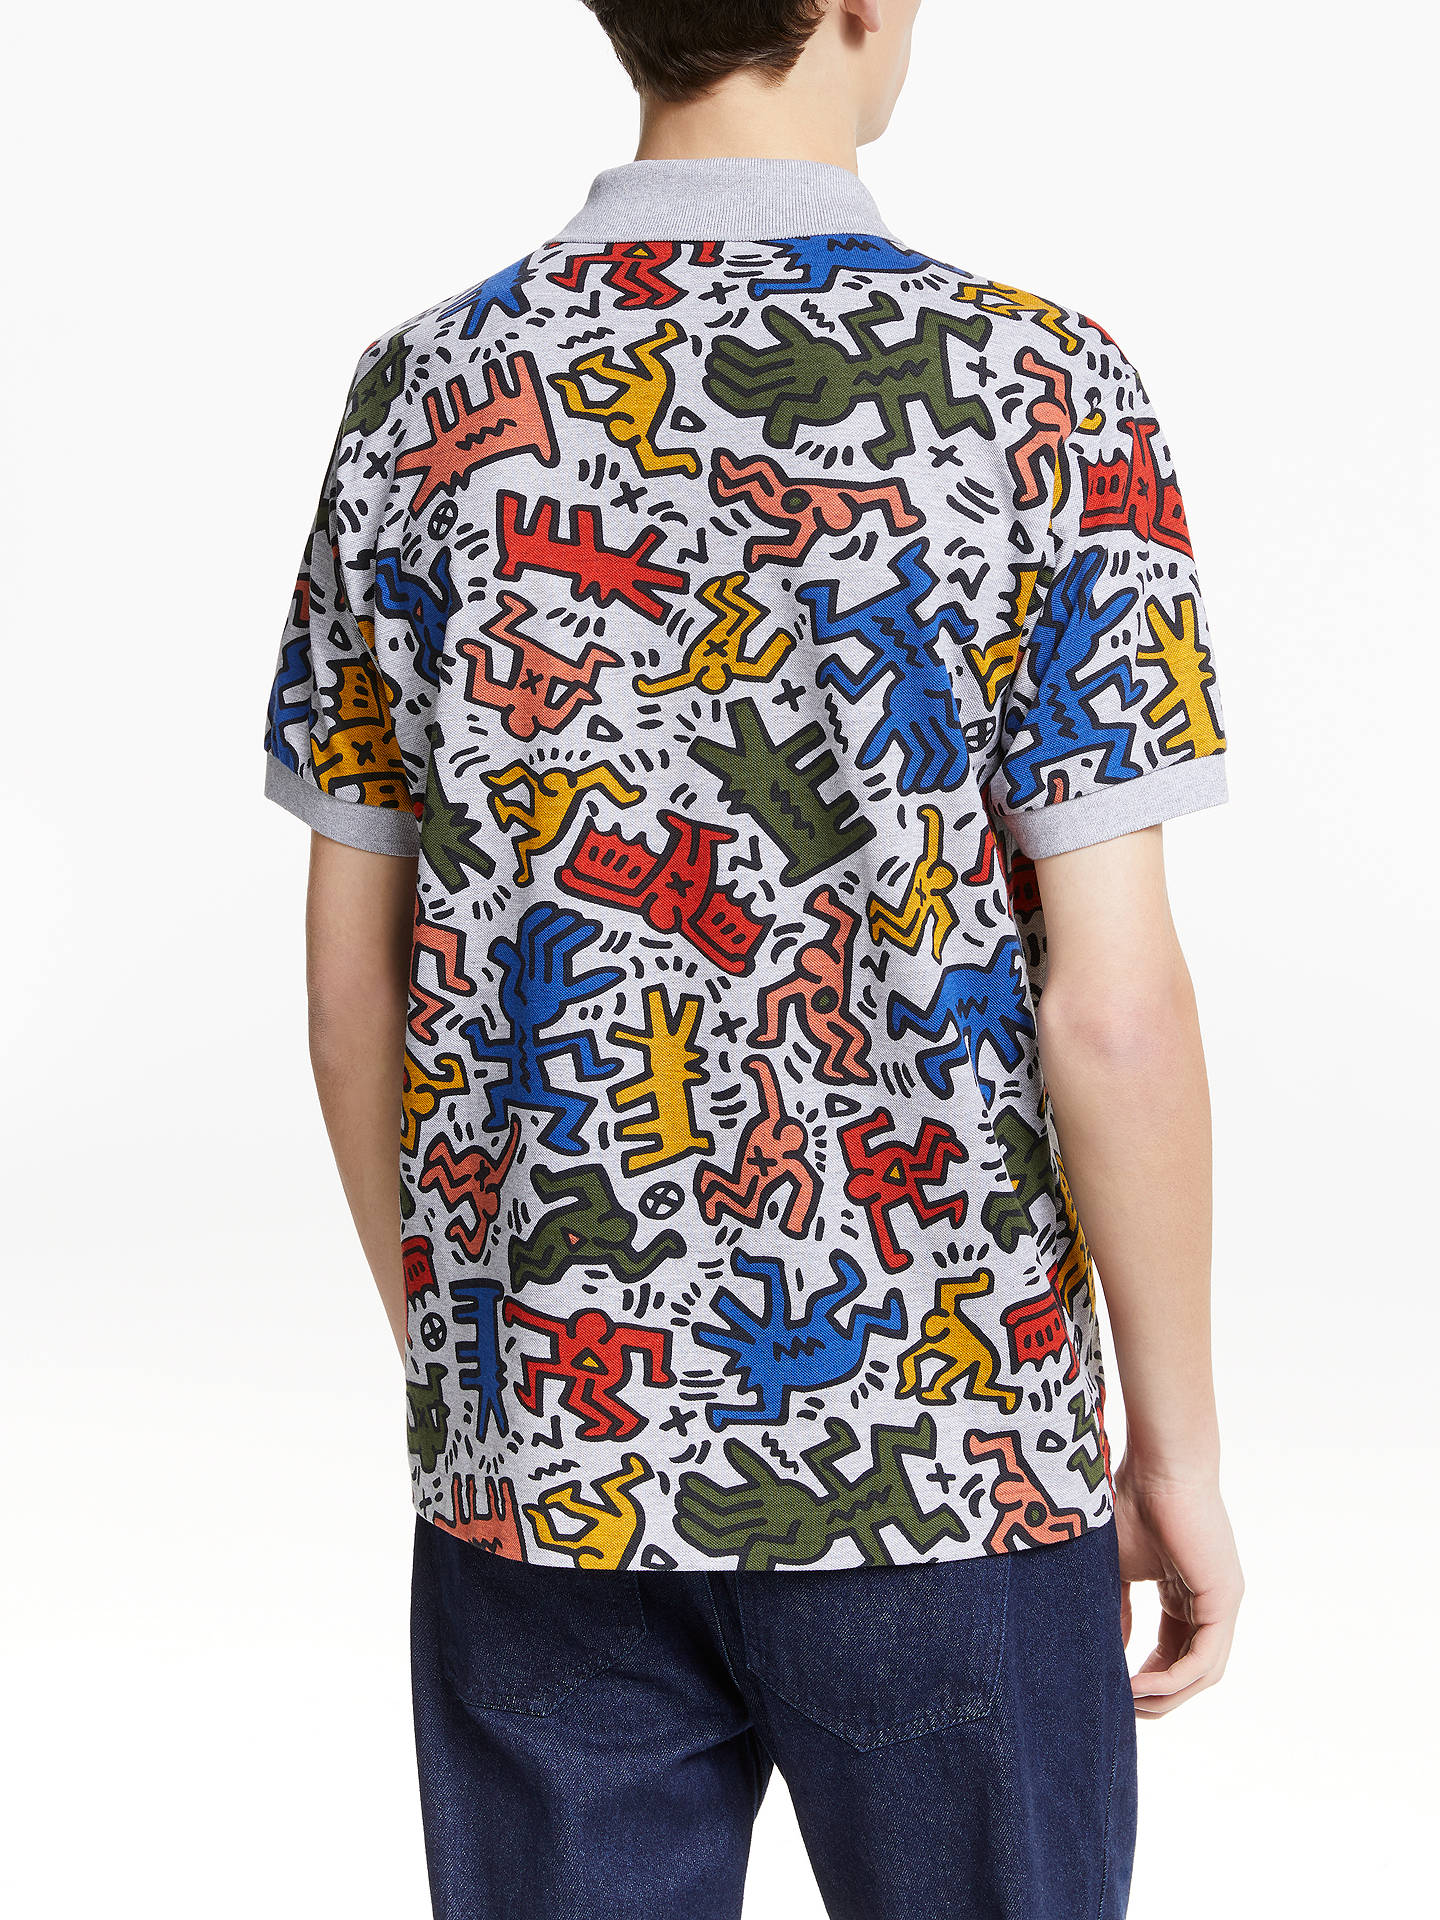 7f989ba4 ... Buy Lacoste x Keith Haring Allover Print Polo Shirt, Silver/Multi, S  Online ...